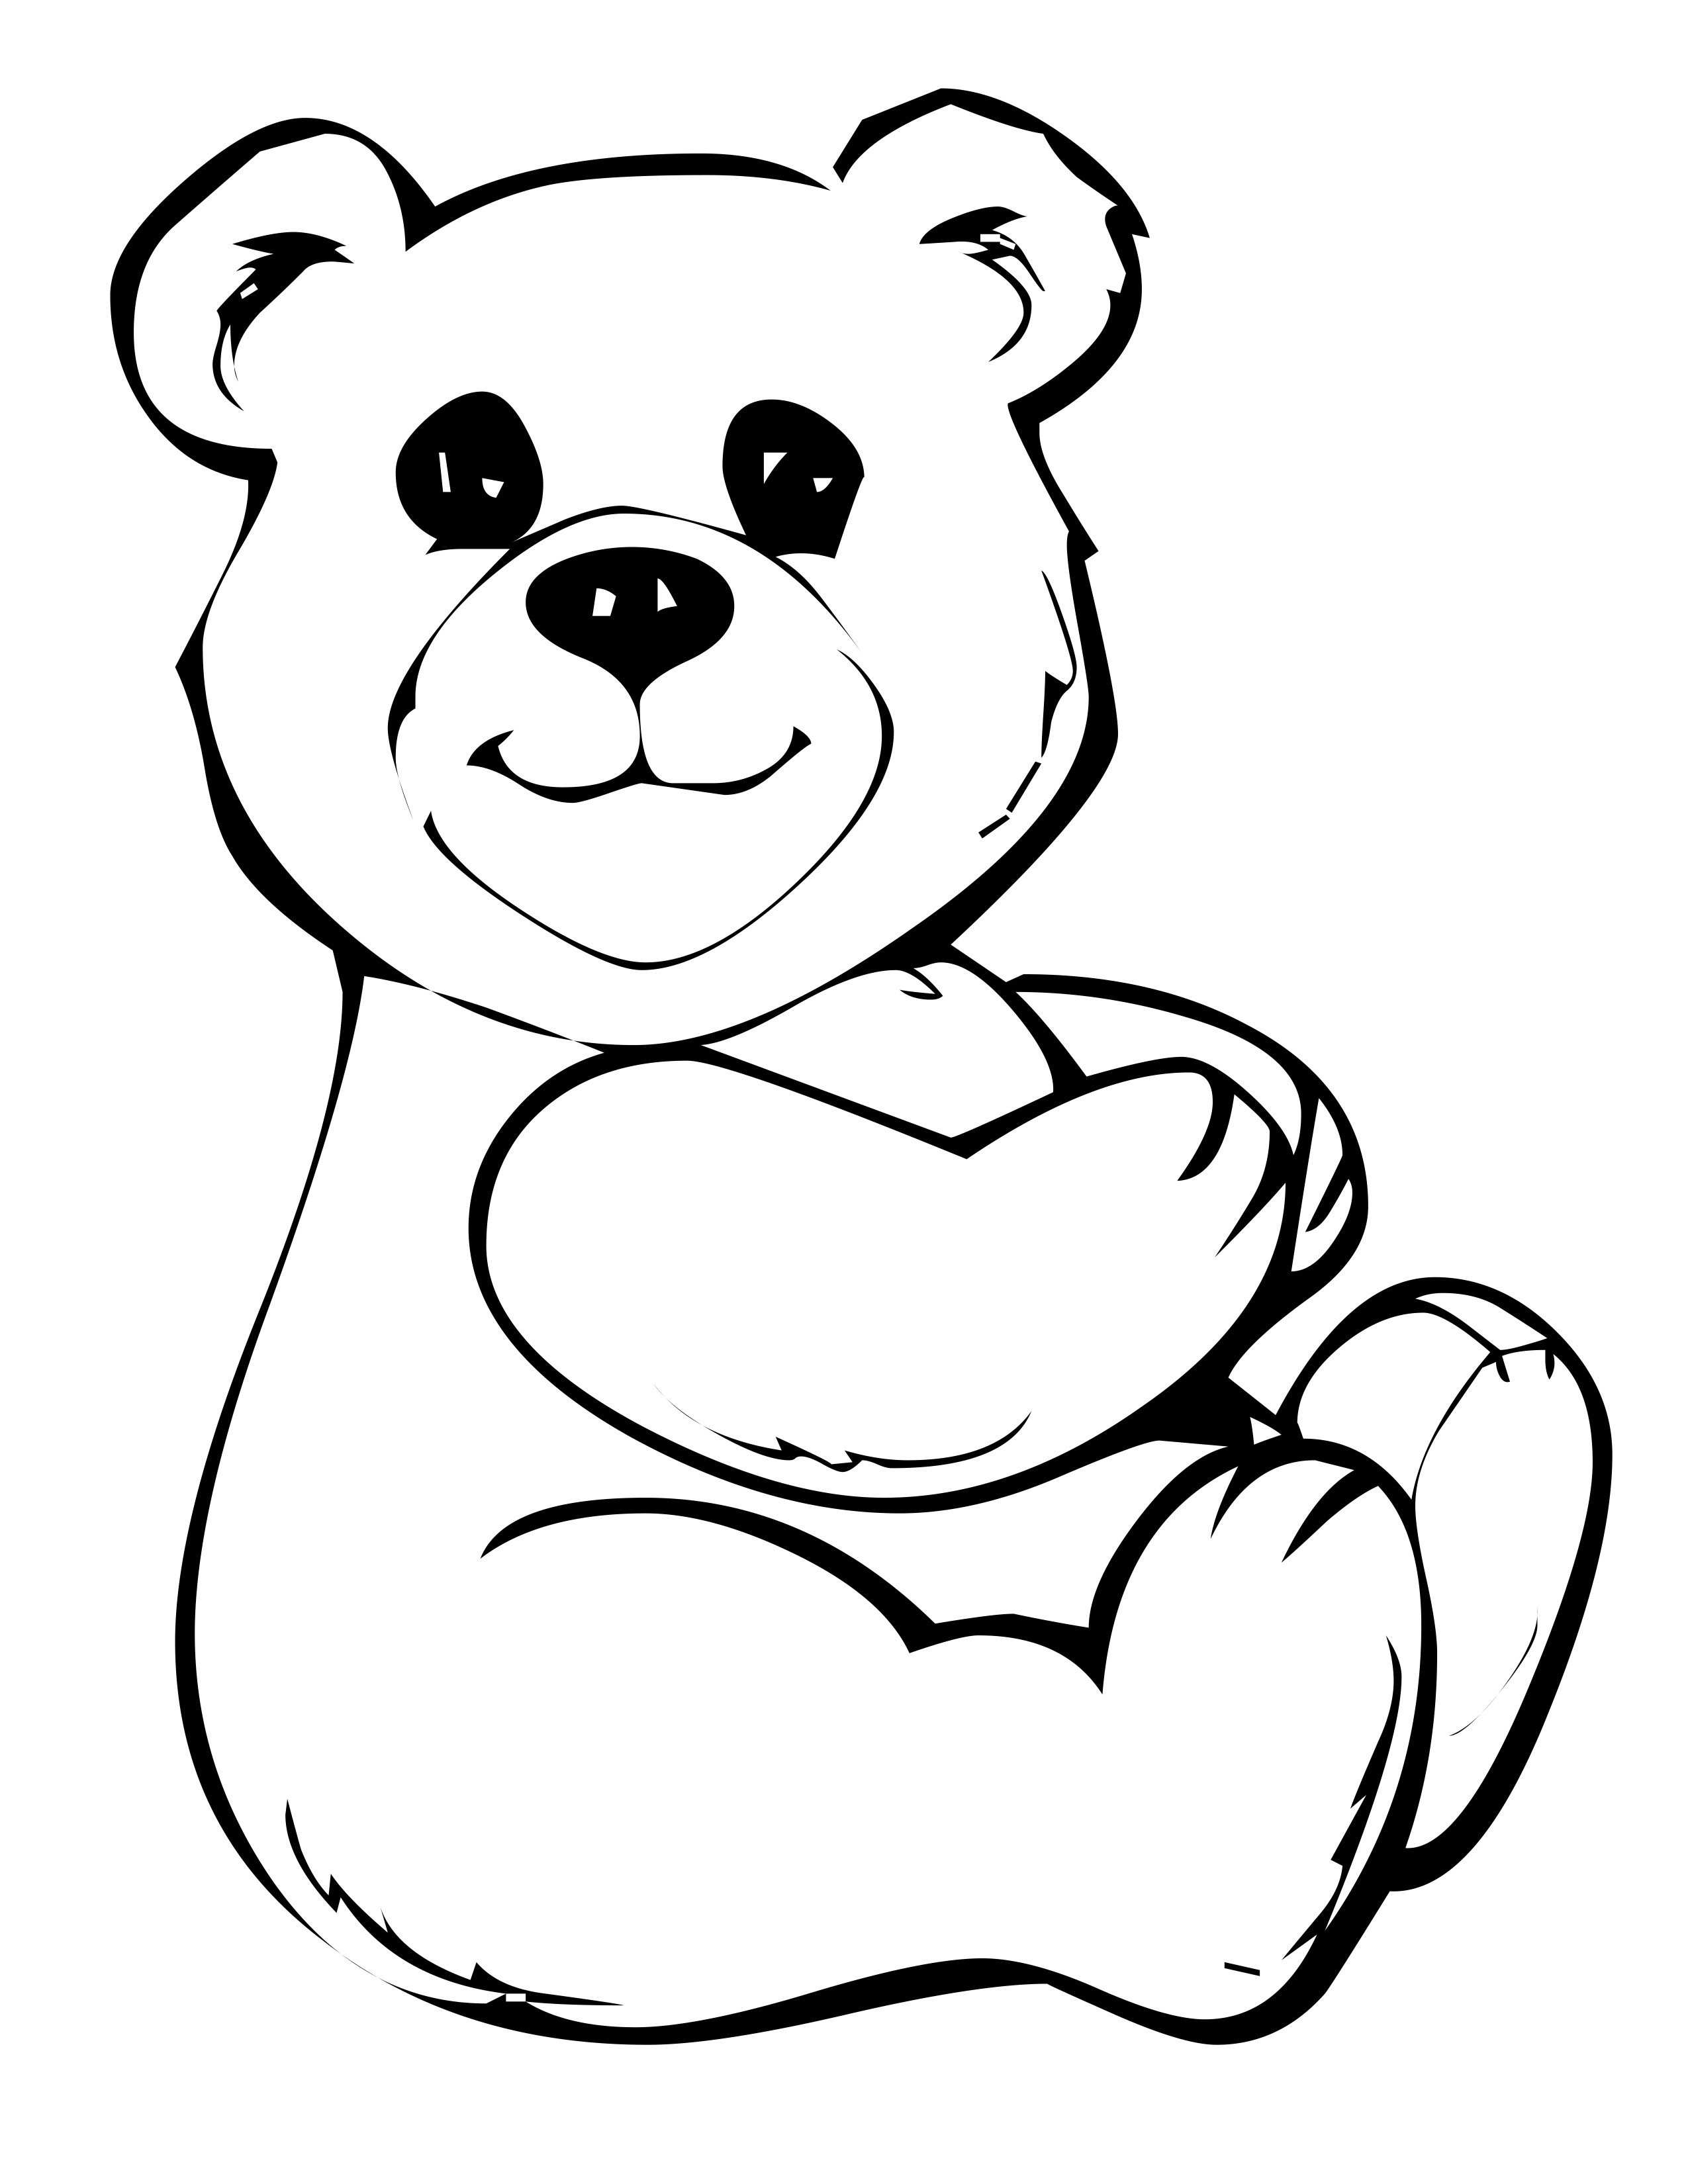 bear coloring pages to print - photo#20